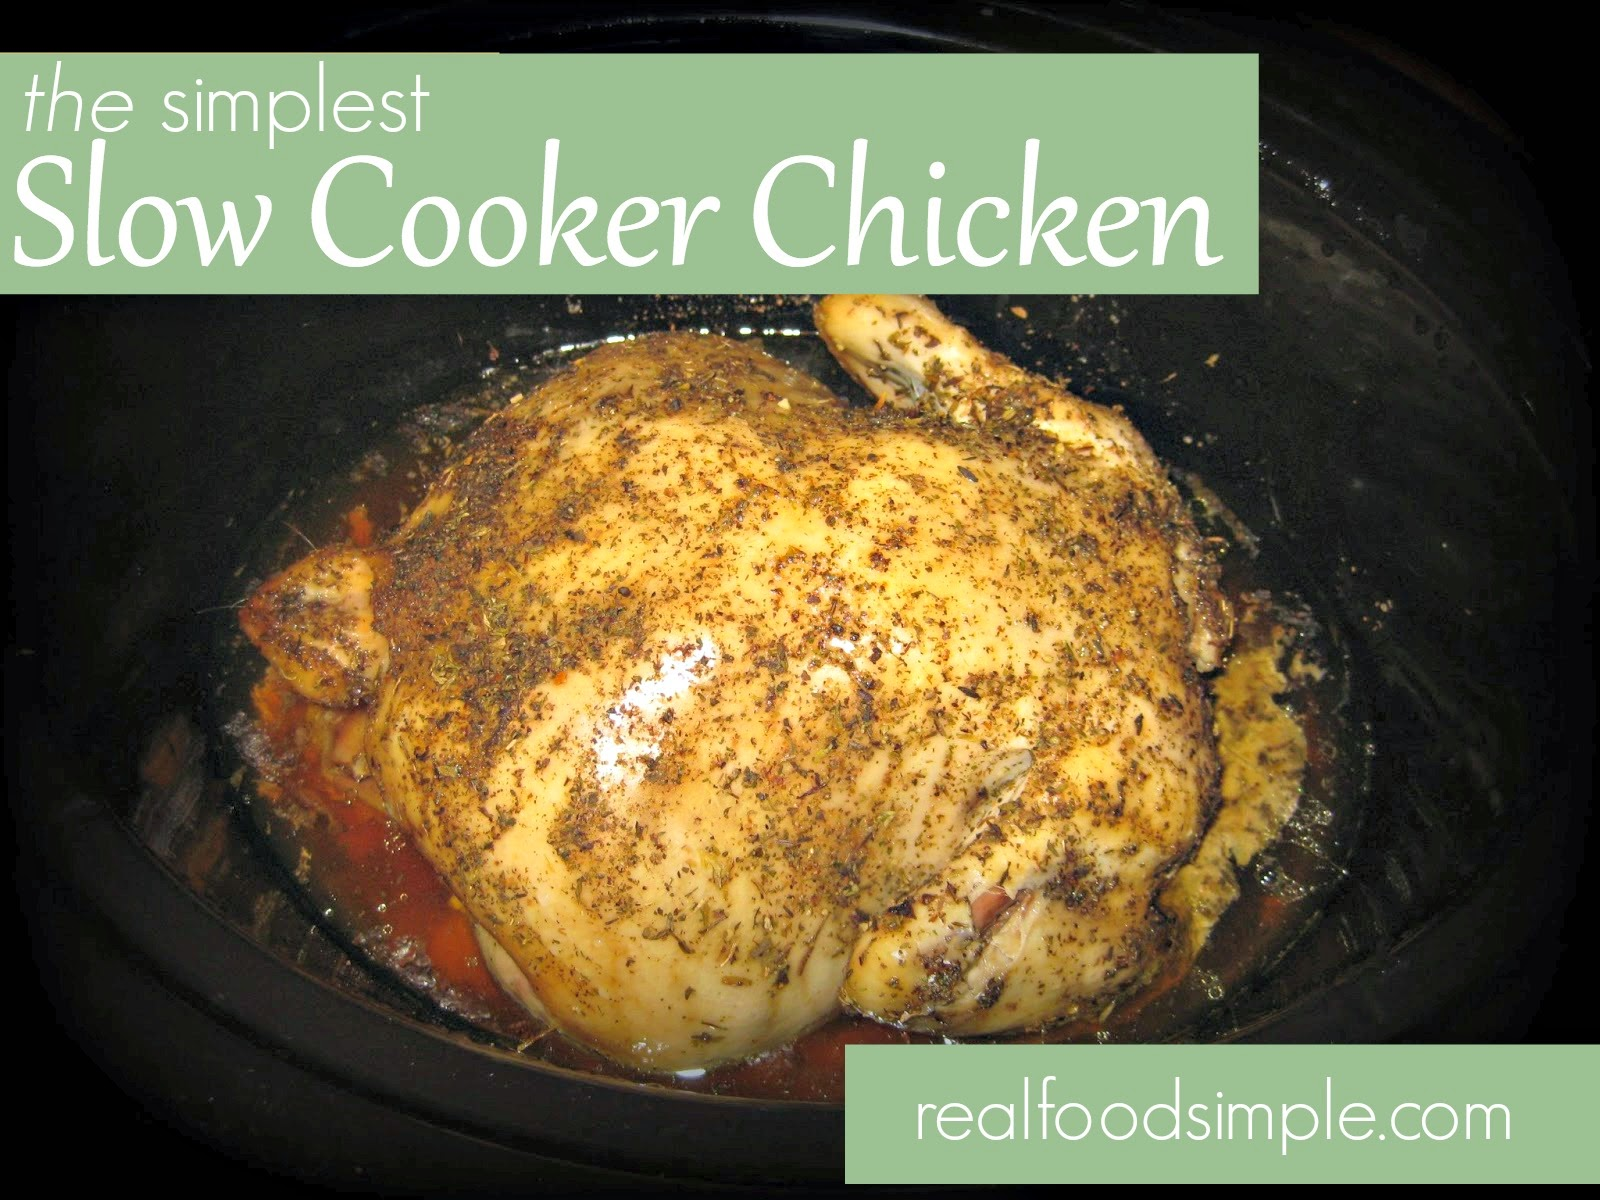 The simplest slow cooker chicken recipe. It only uses 2 components. This is the perfect weeknight meal for a busy family. | realfoodsimple.com